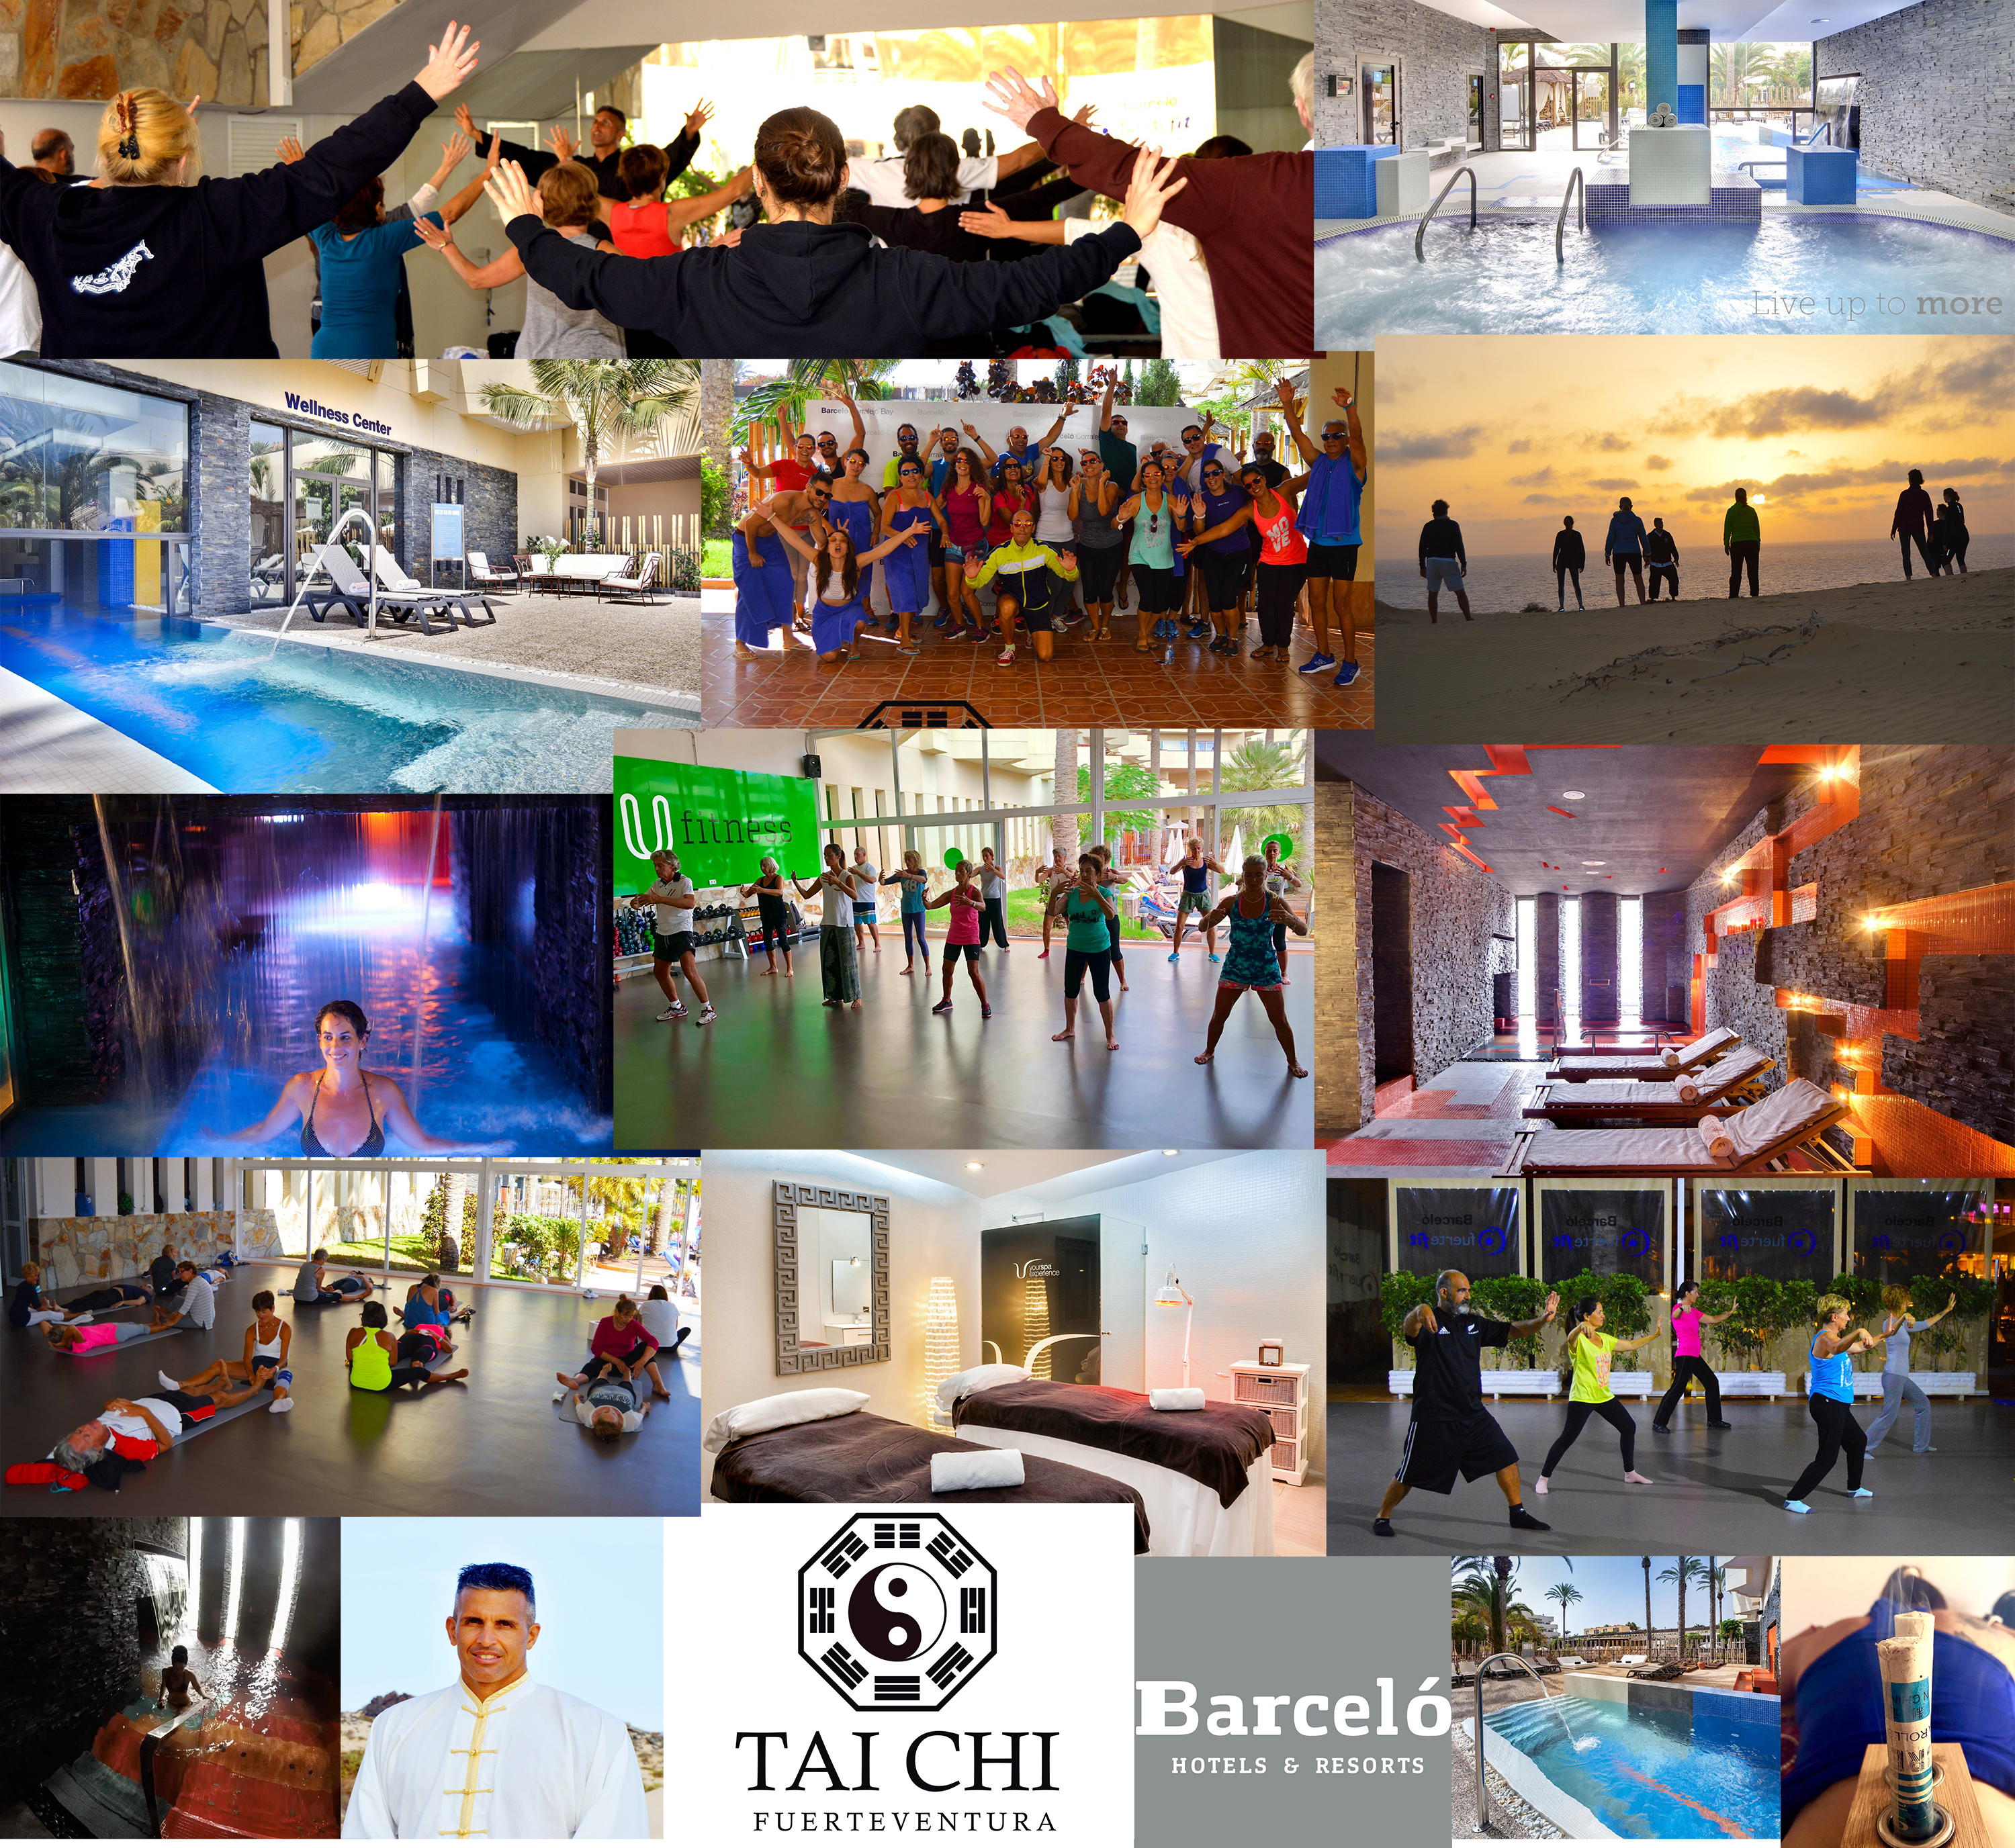 tai chi fuerteventura and barcelo hotels